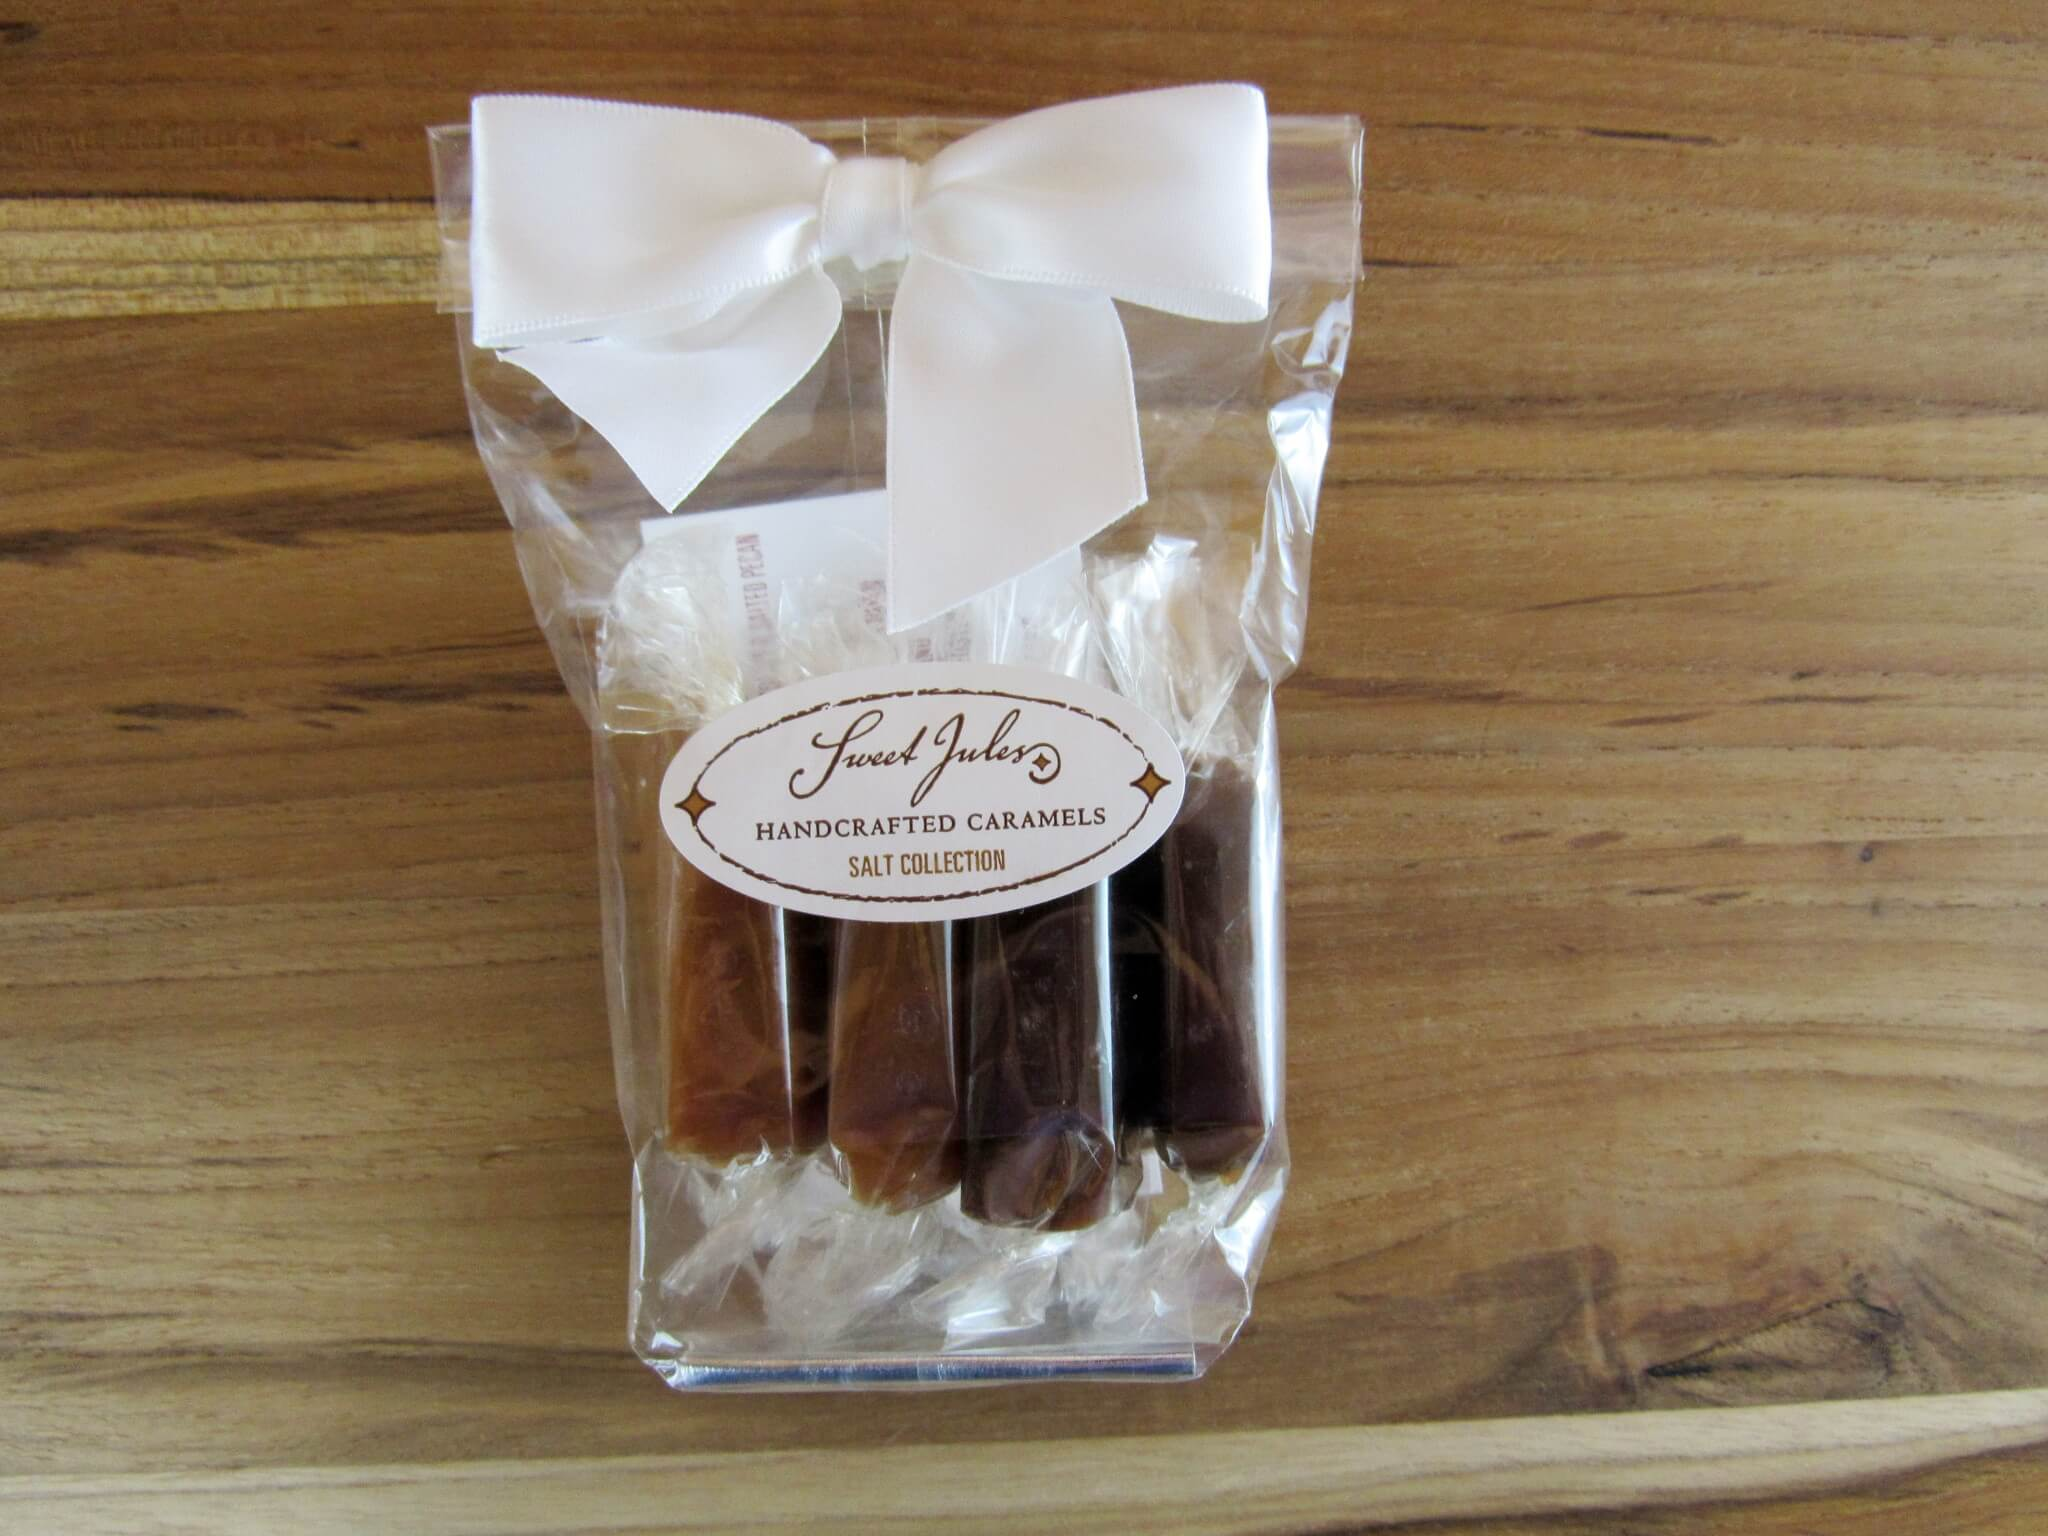 Sweet Jules Salted Caramels